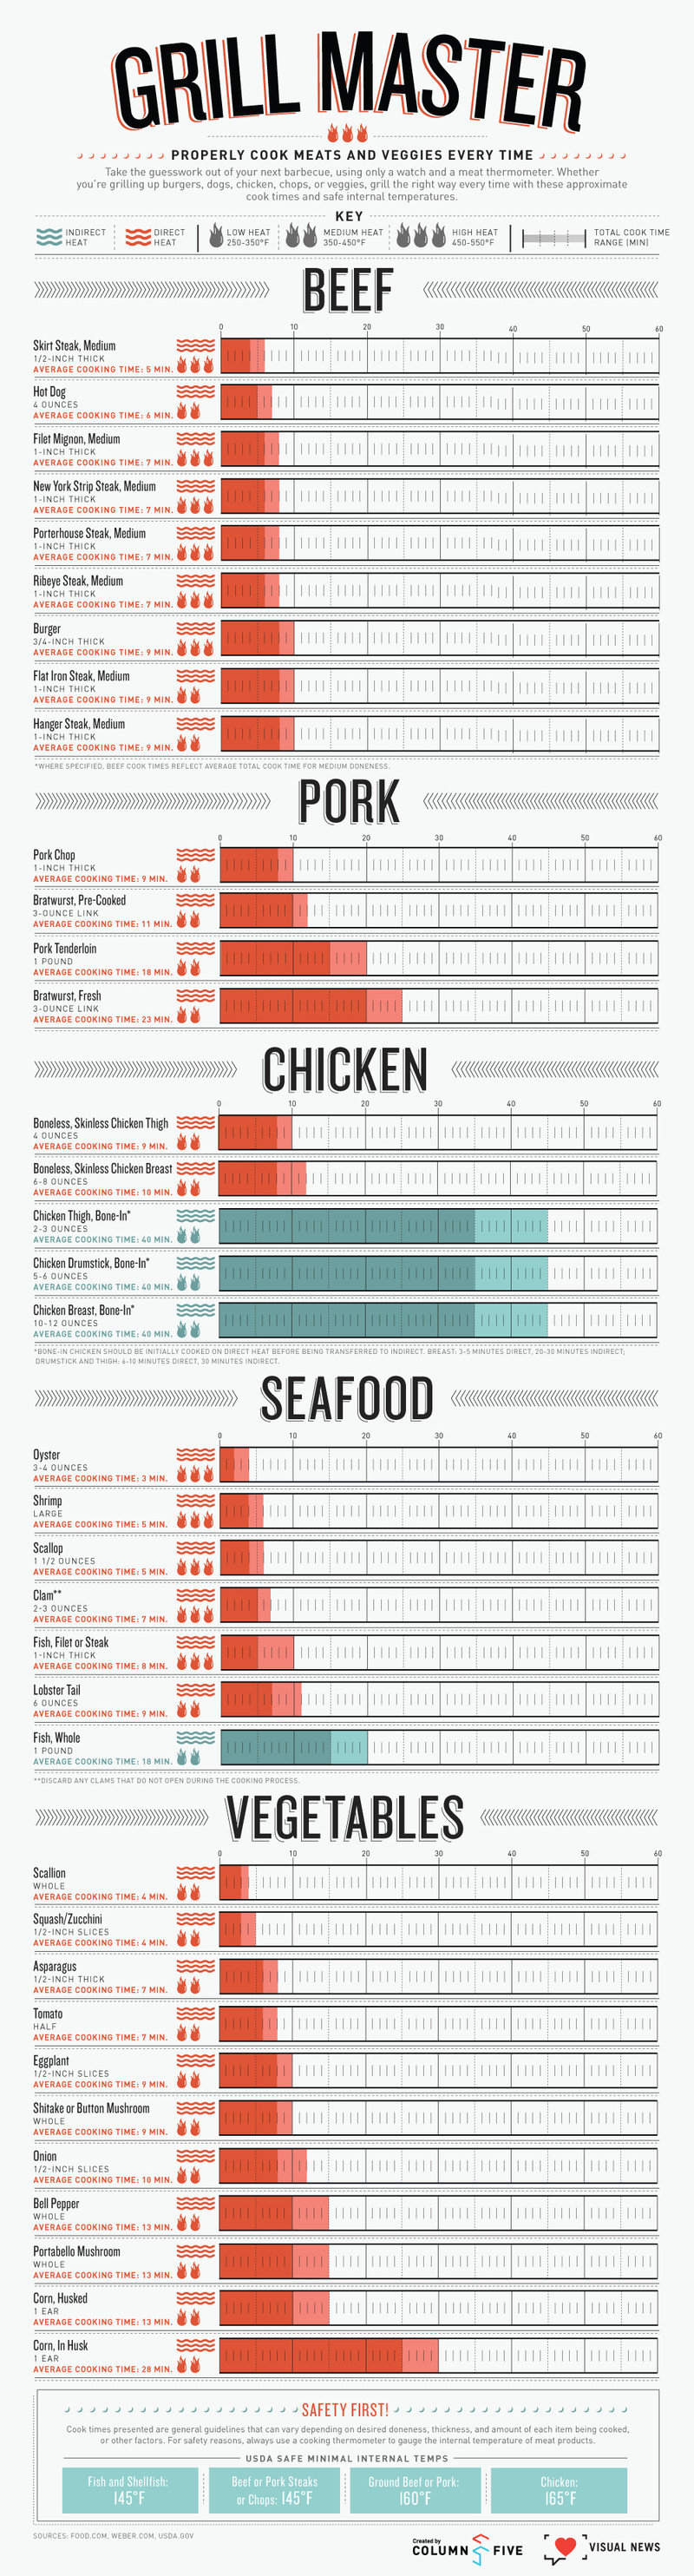 Grill master: Properly cook meats and veggies every time #infographic